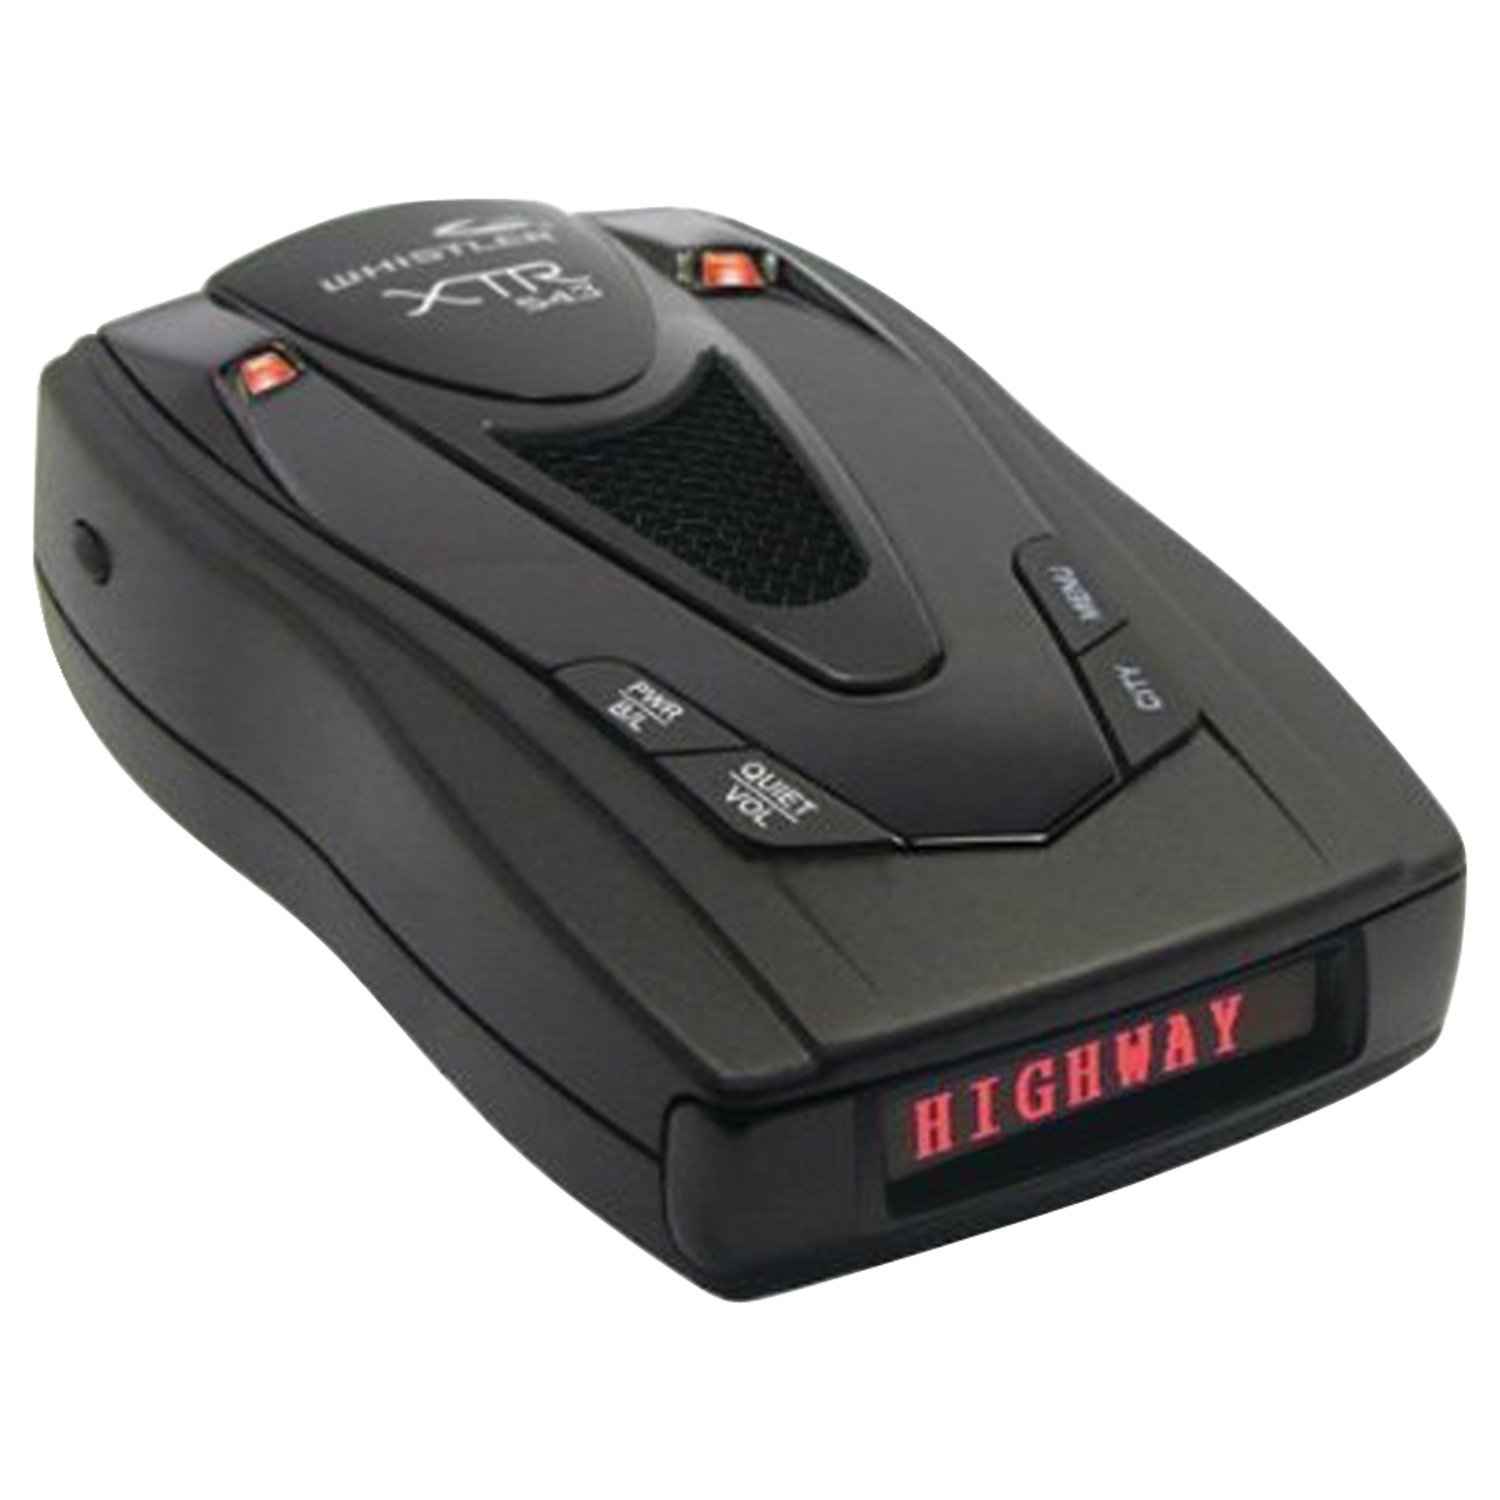 WHISTLER XTR-543 XTR-543 Battery-Operated Laser Radar Detector